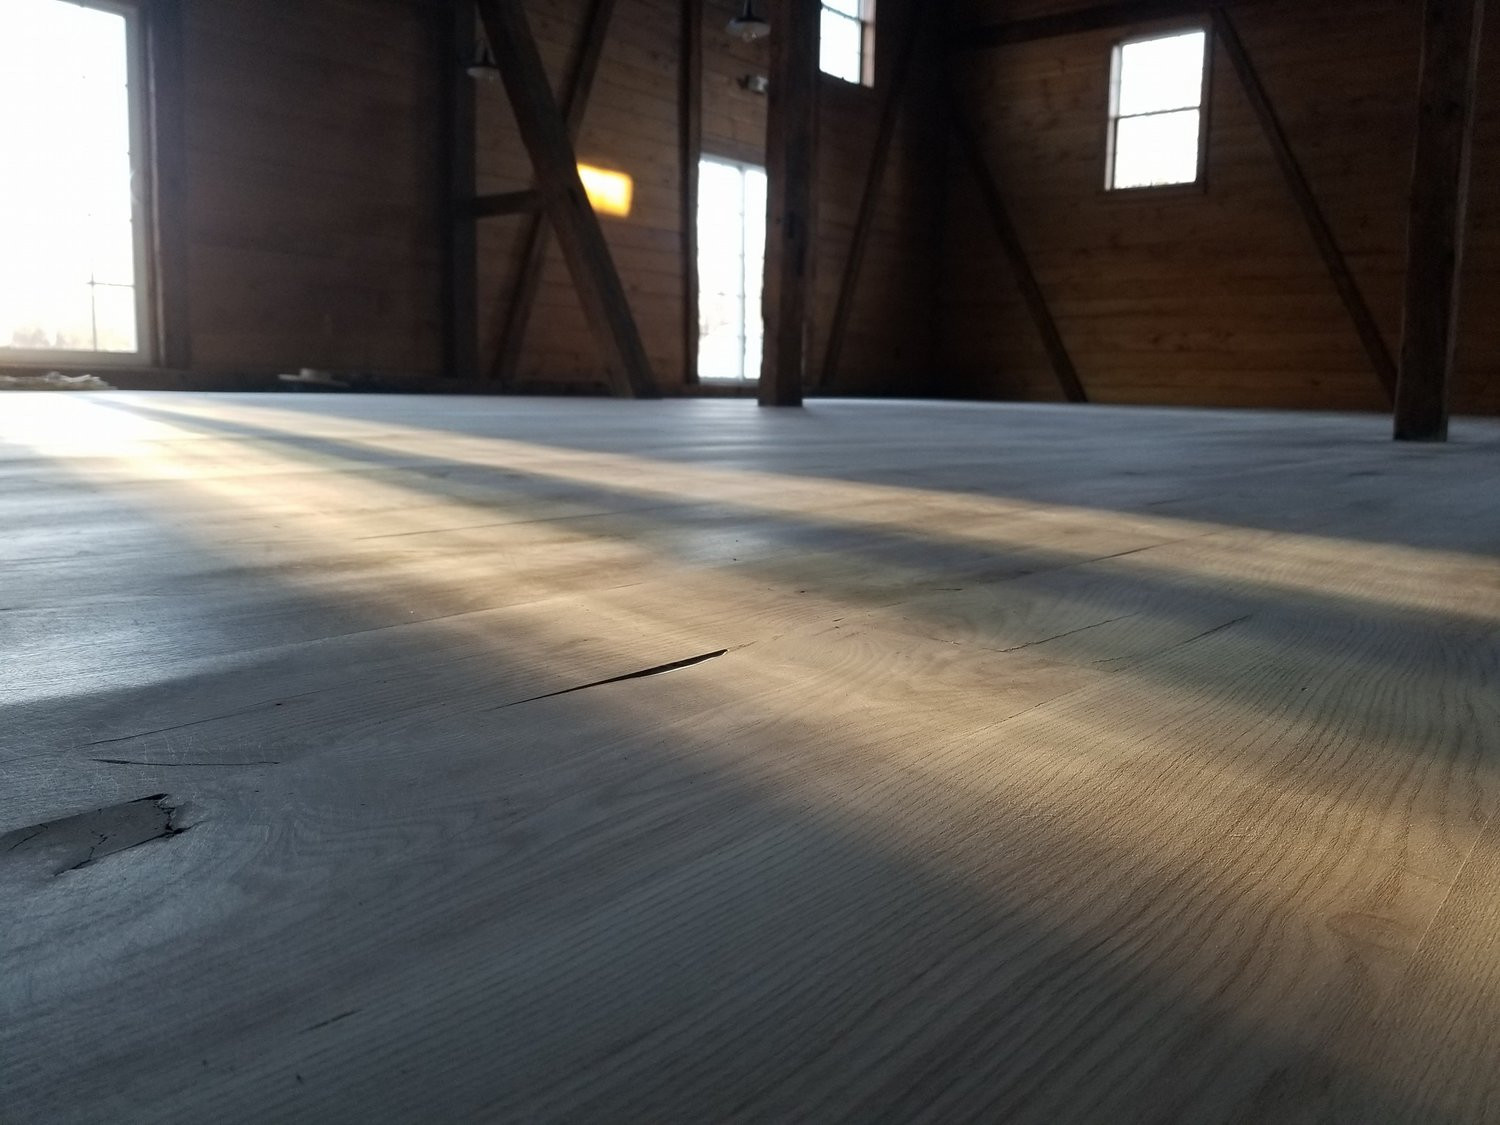 refinish hardwood floors in one day of vintage wood flooring intended for 23674708 1839713442723160 5043260908070480194 o